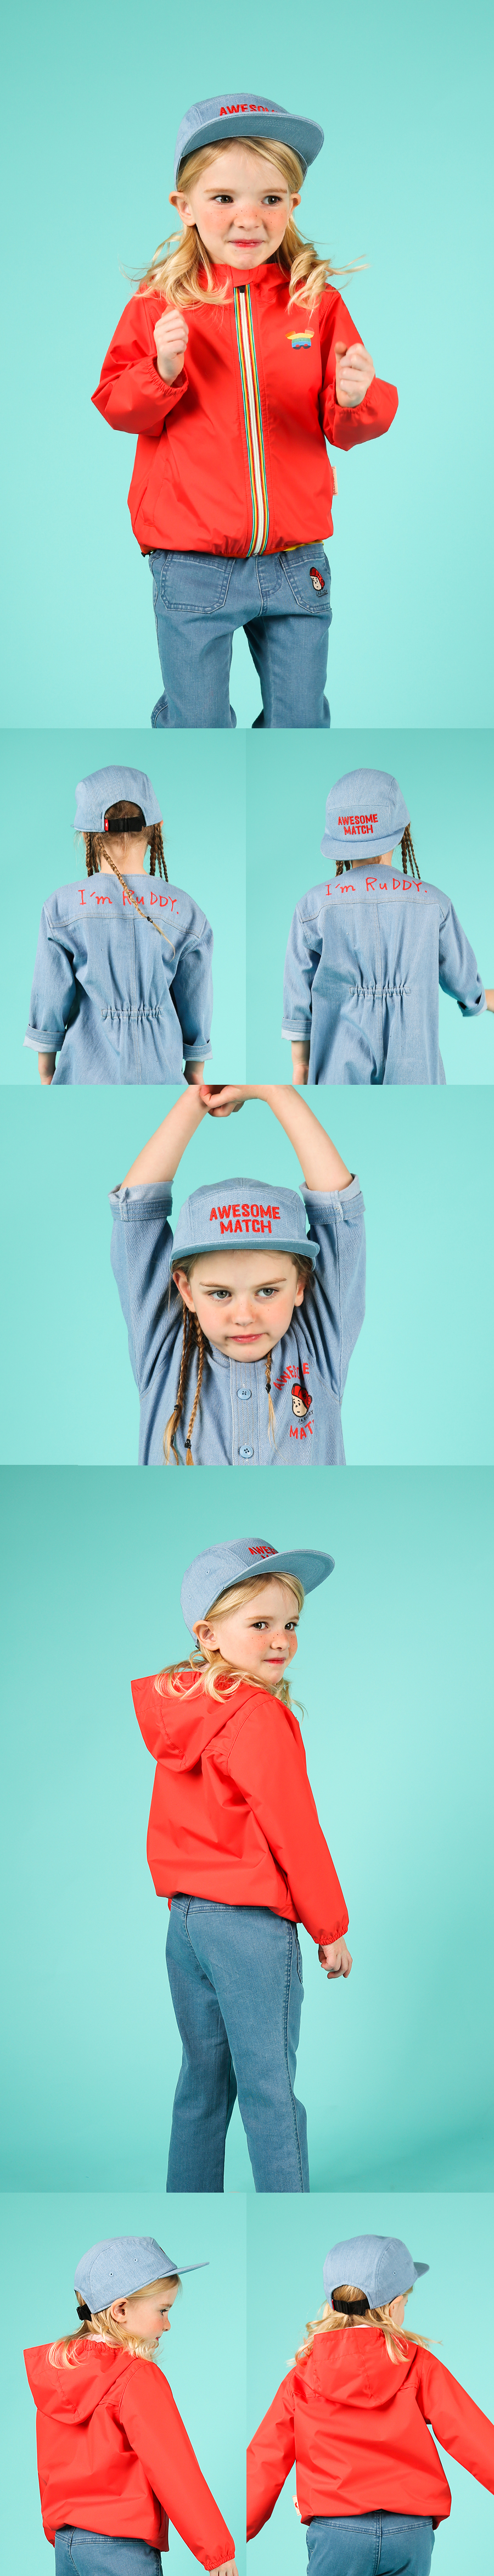 Awesome match denim camp cap 상세 이미지